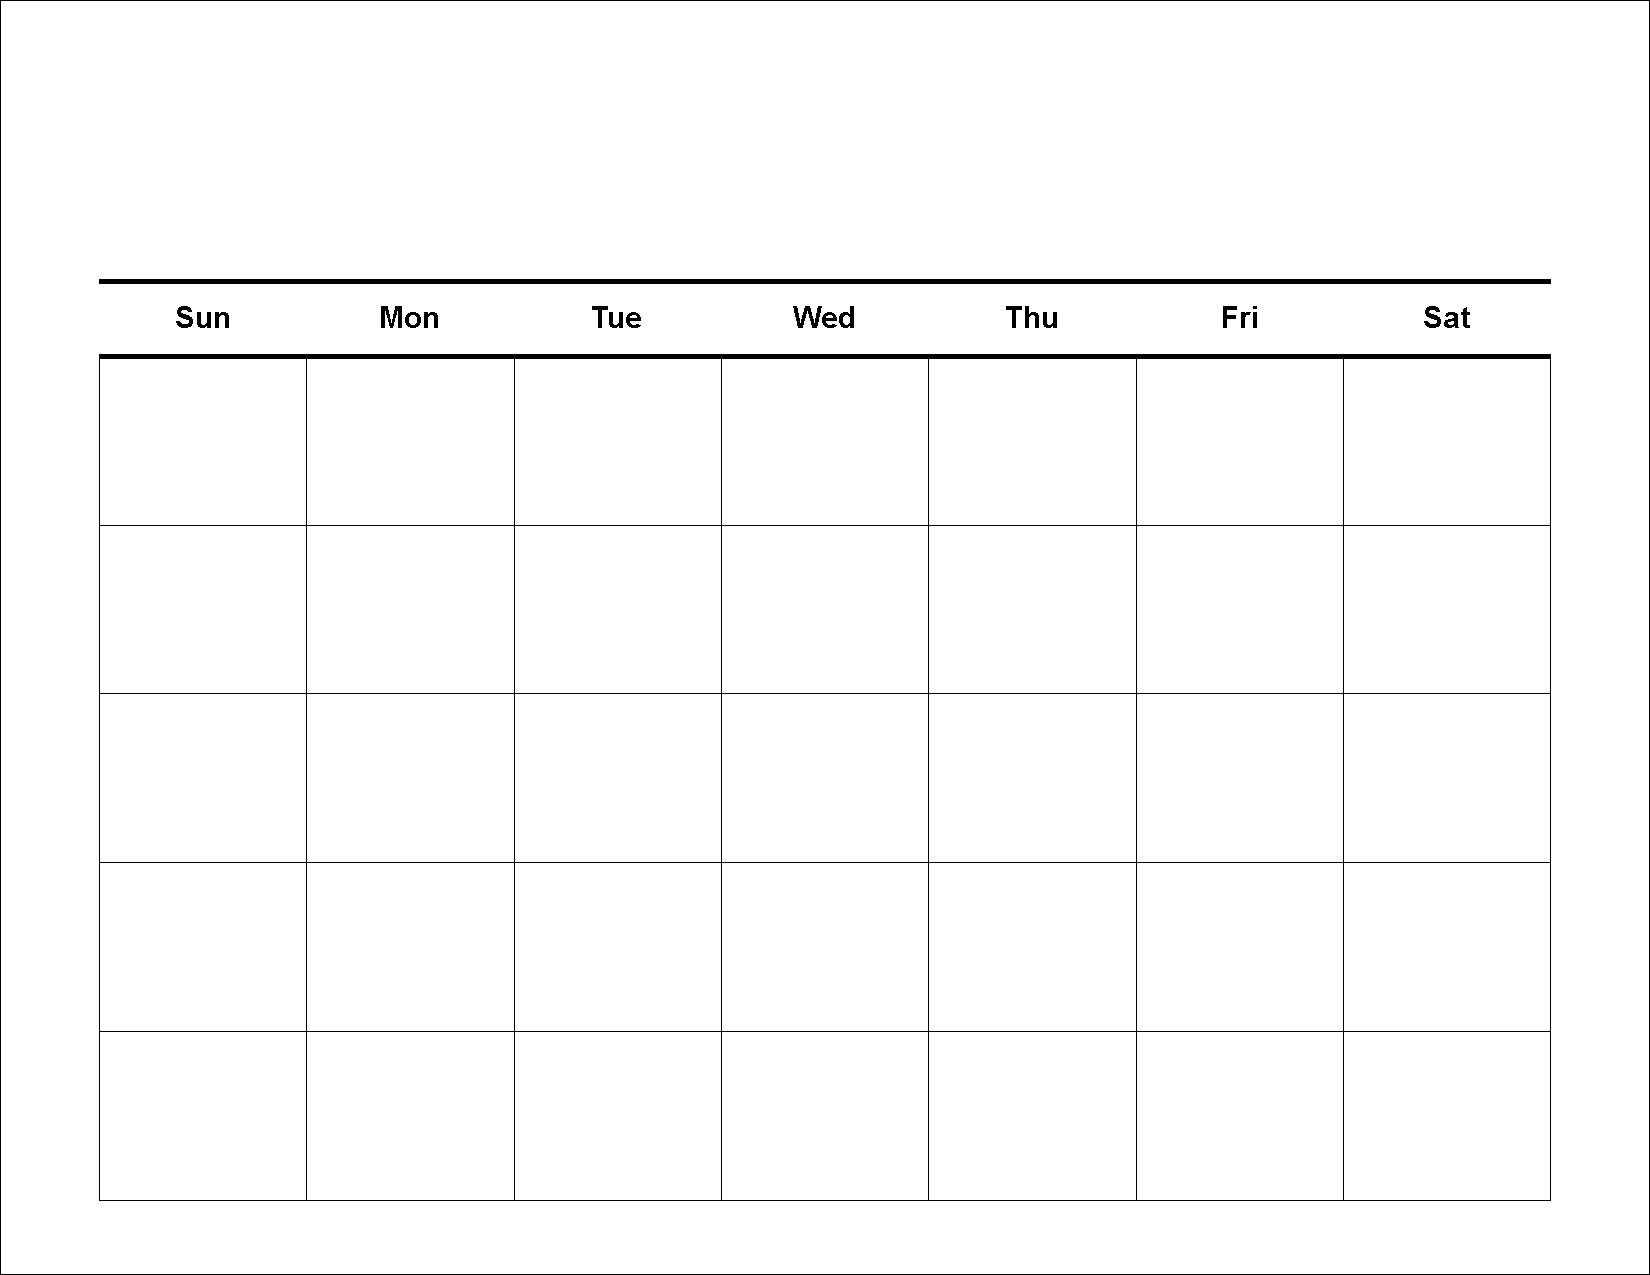 Free 5 Day Calendar Template | Printable Calendar Templates 2019 pertaining to Printable Calendar Day By Day